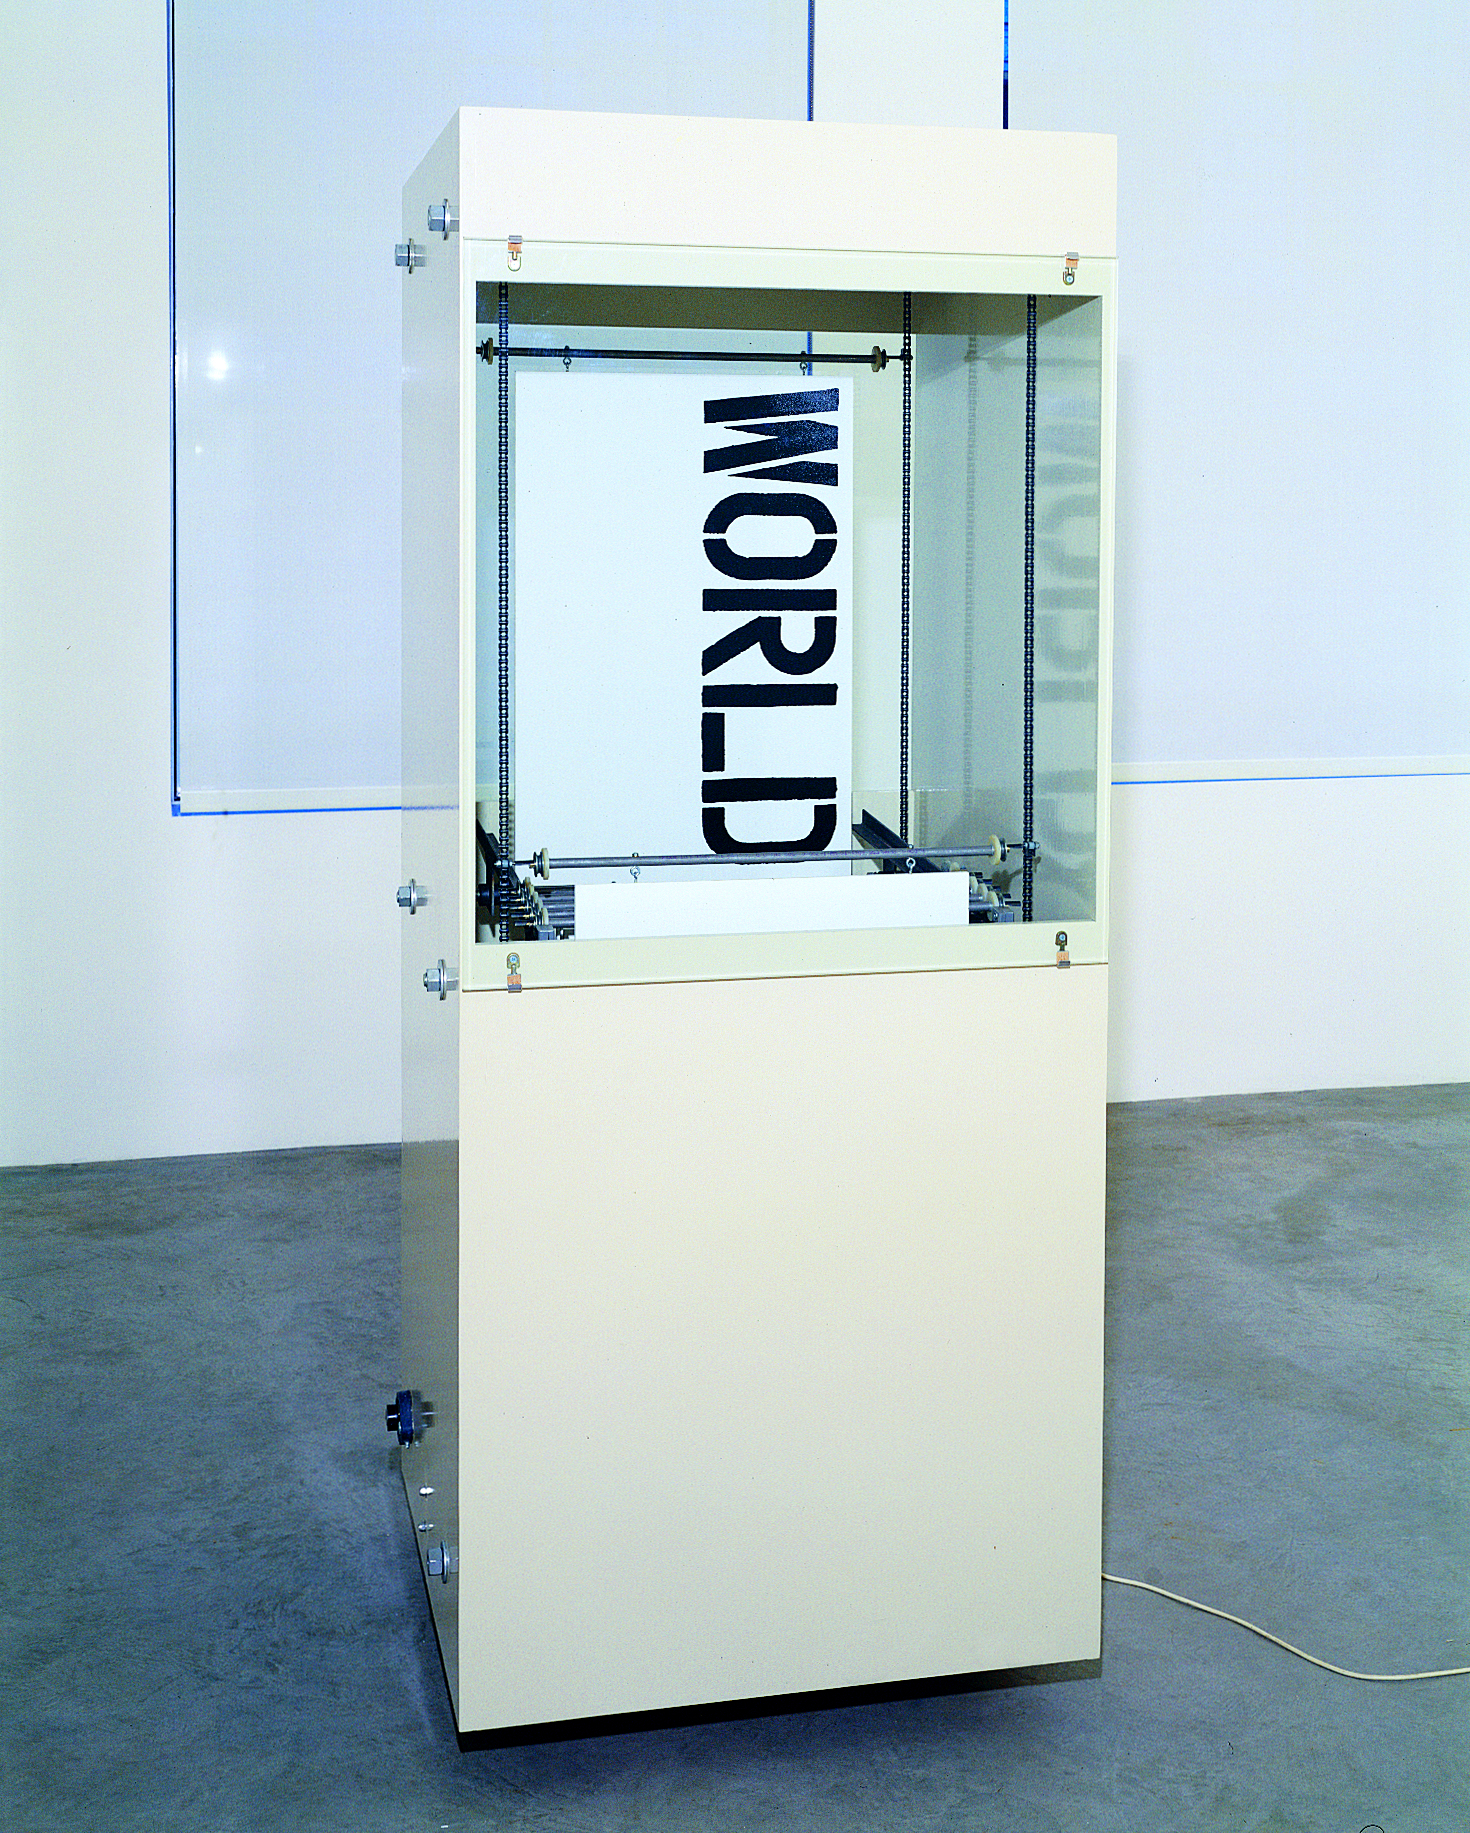 Word Box (with Christopher Wool and Paul Auster), 1991